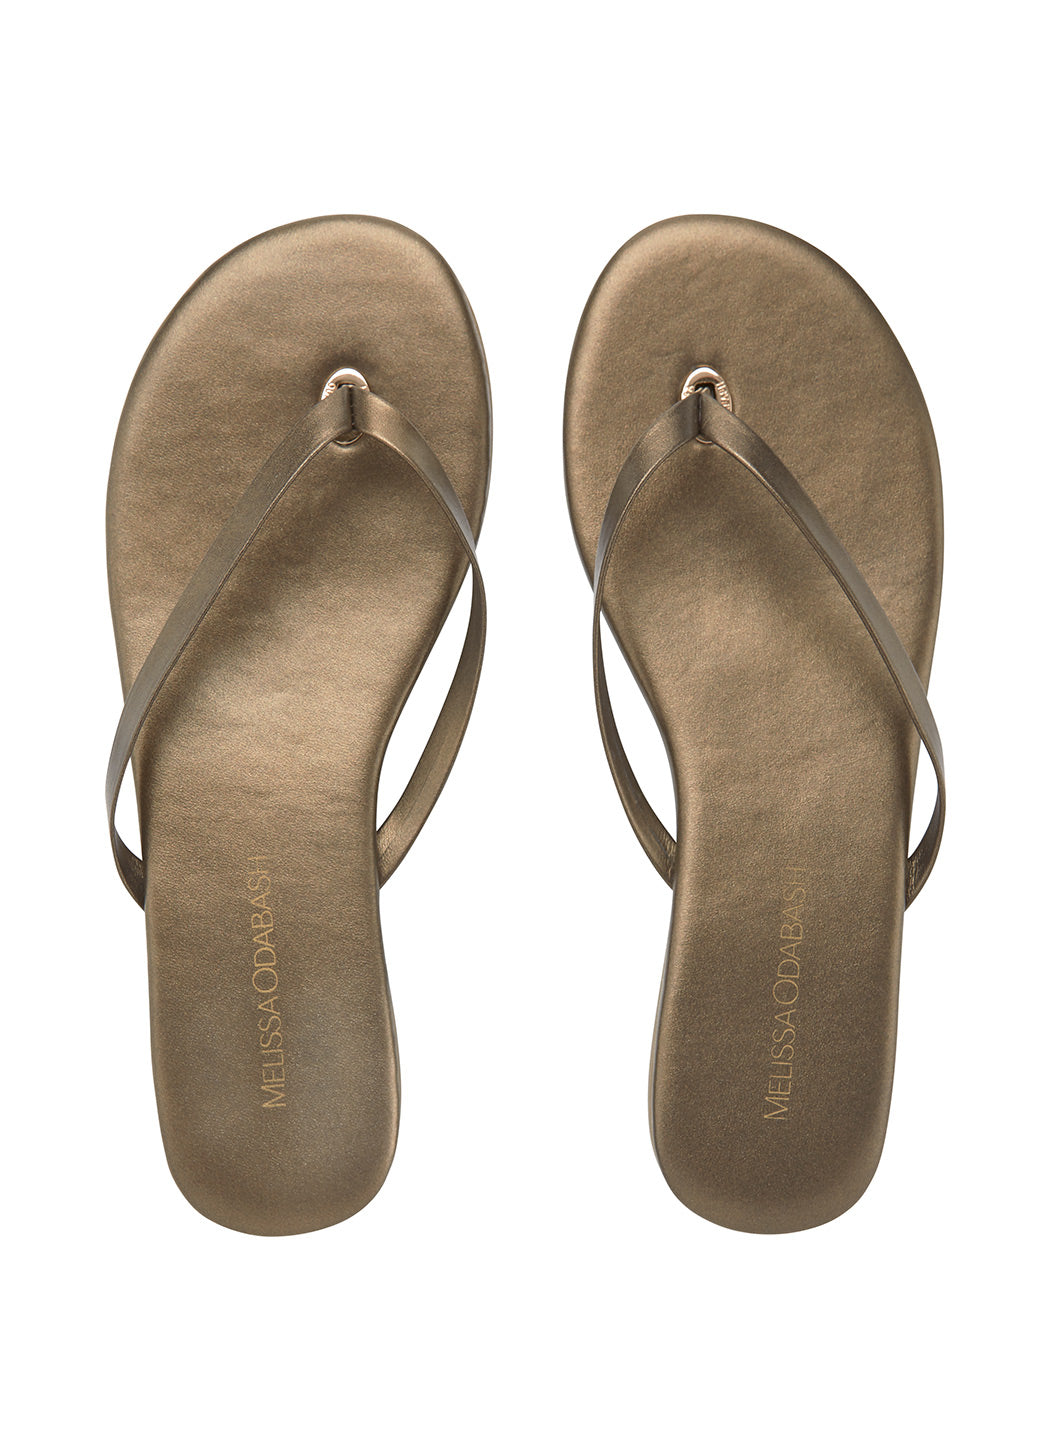 Melissa Odabash Leather Flip Flops Bronze